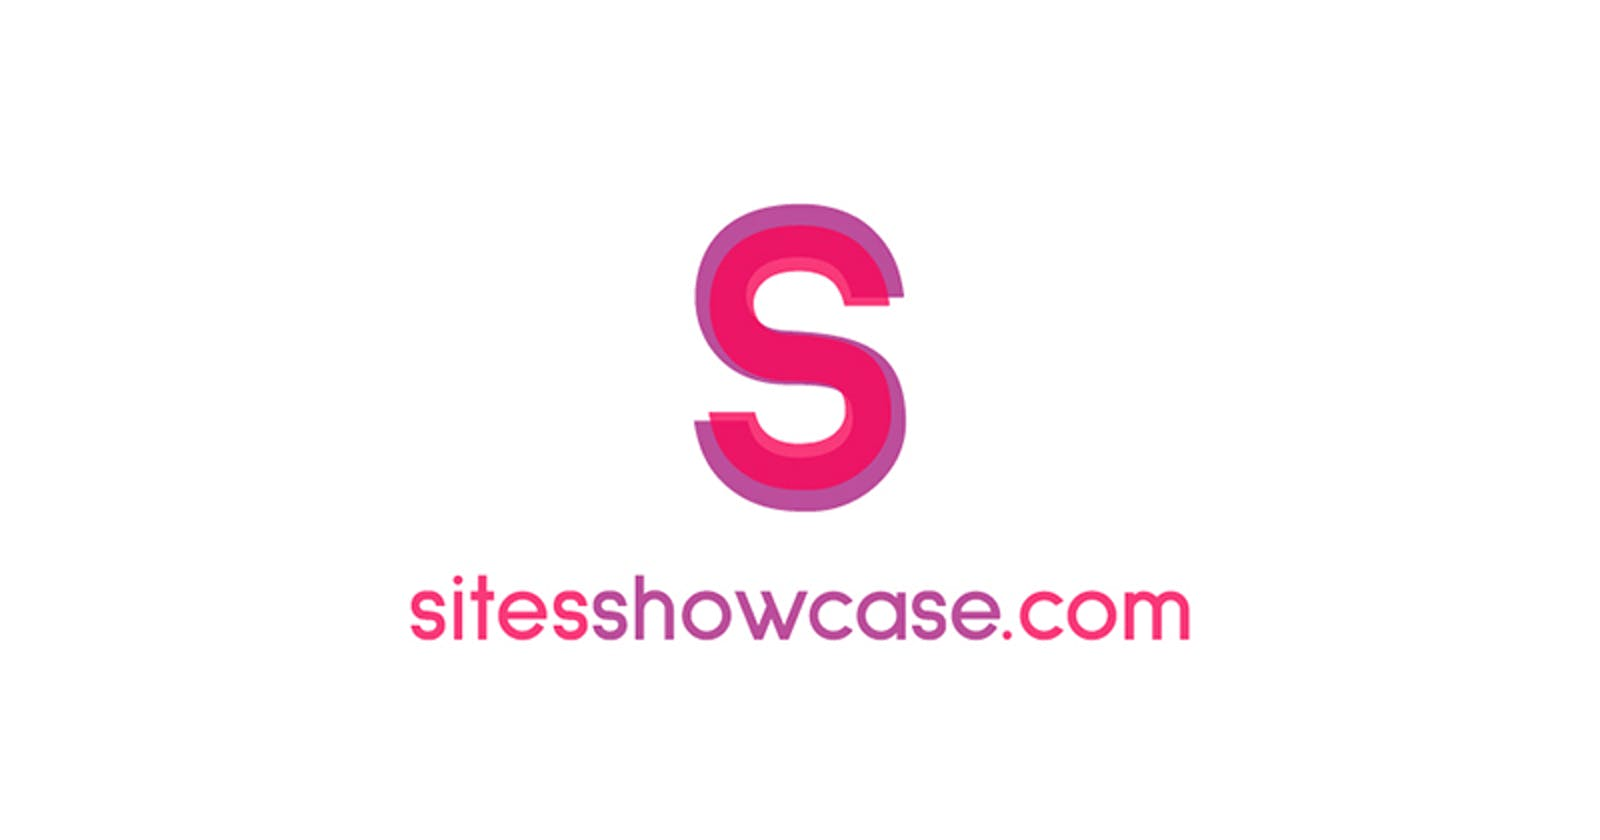 sitesshowcase.com   My side project in Svelte